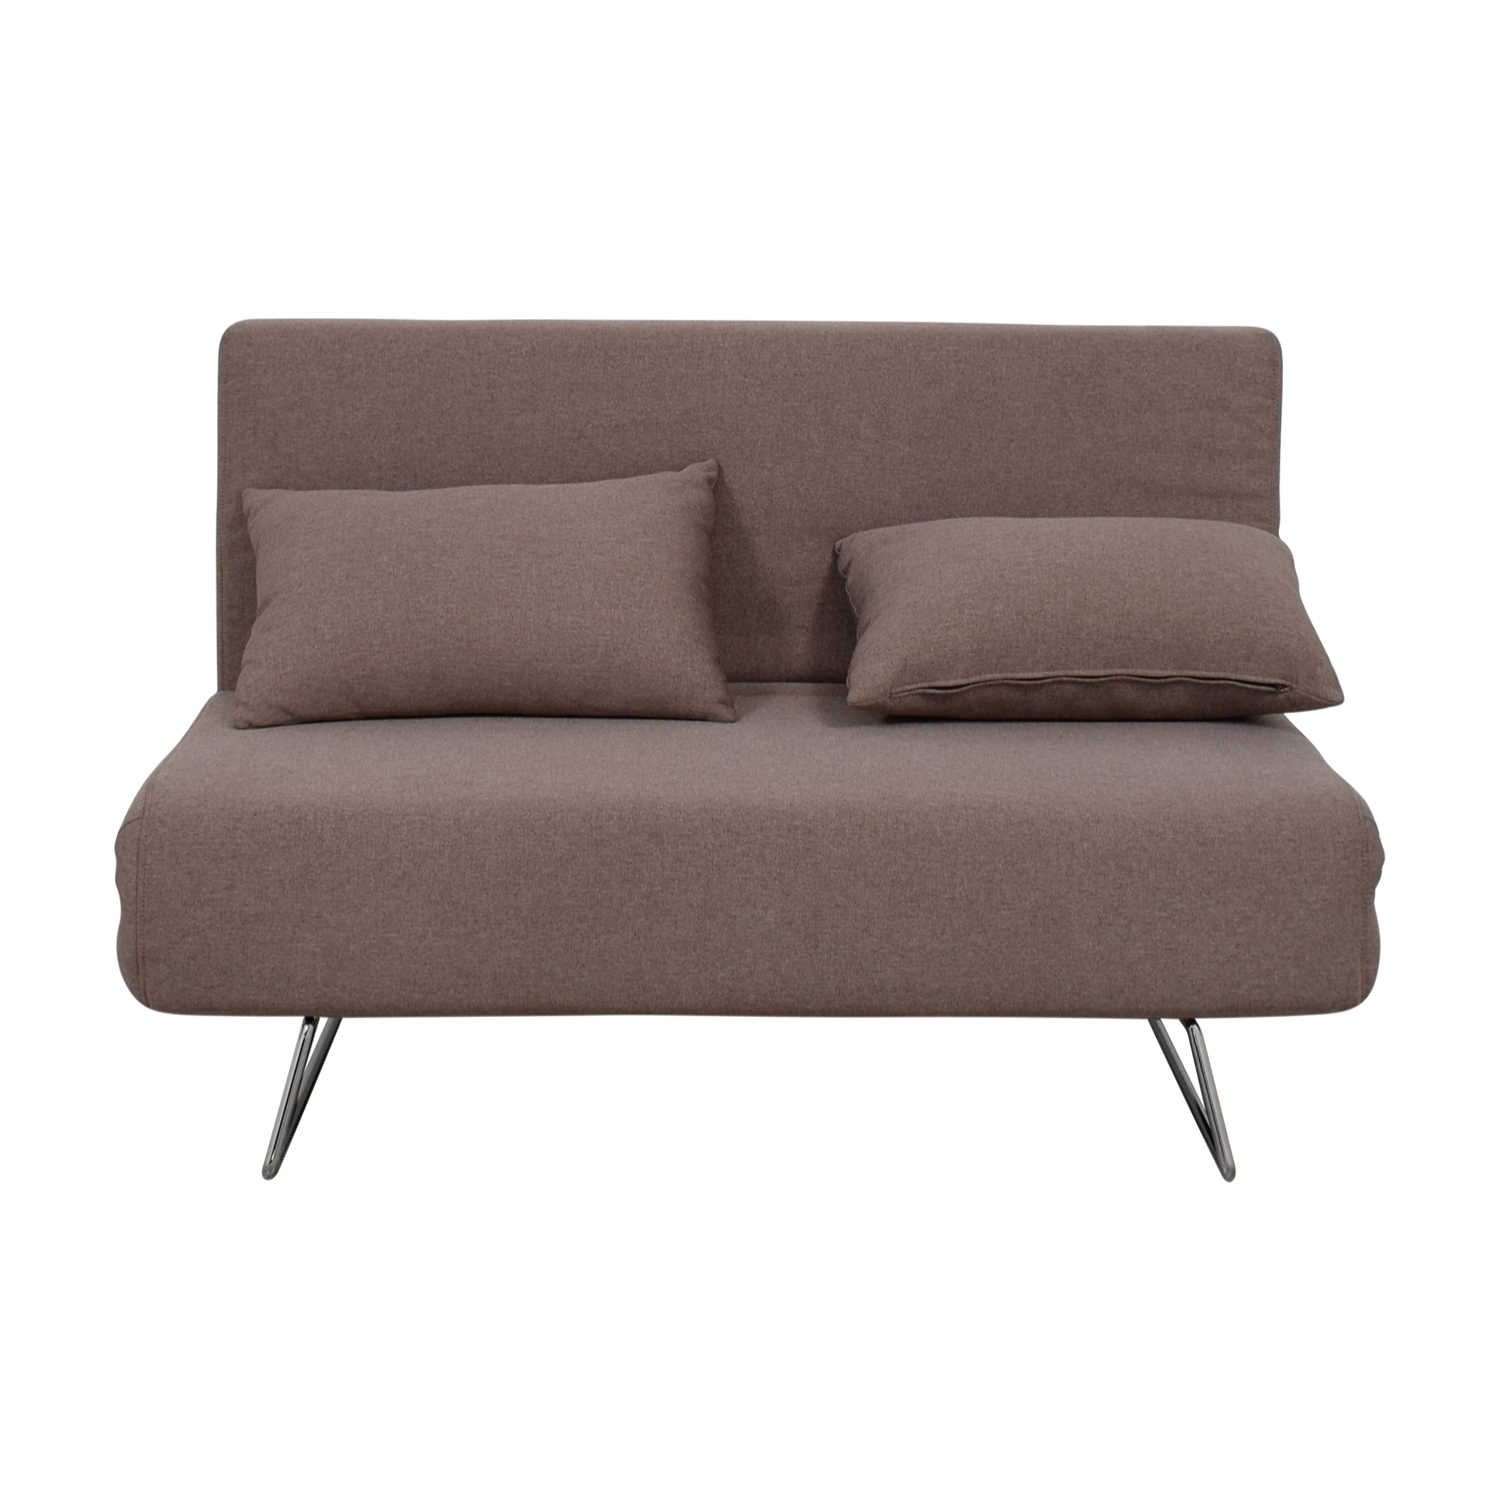 Ordinaire Shop All Modern Gray Convertible Futon All Modern ...